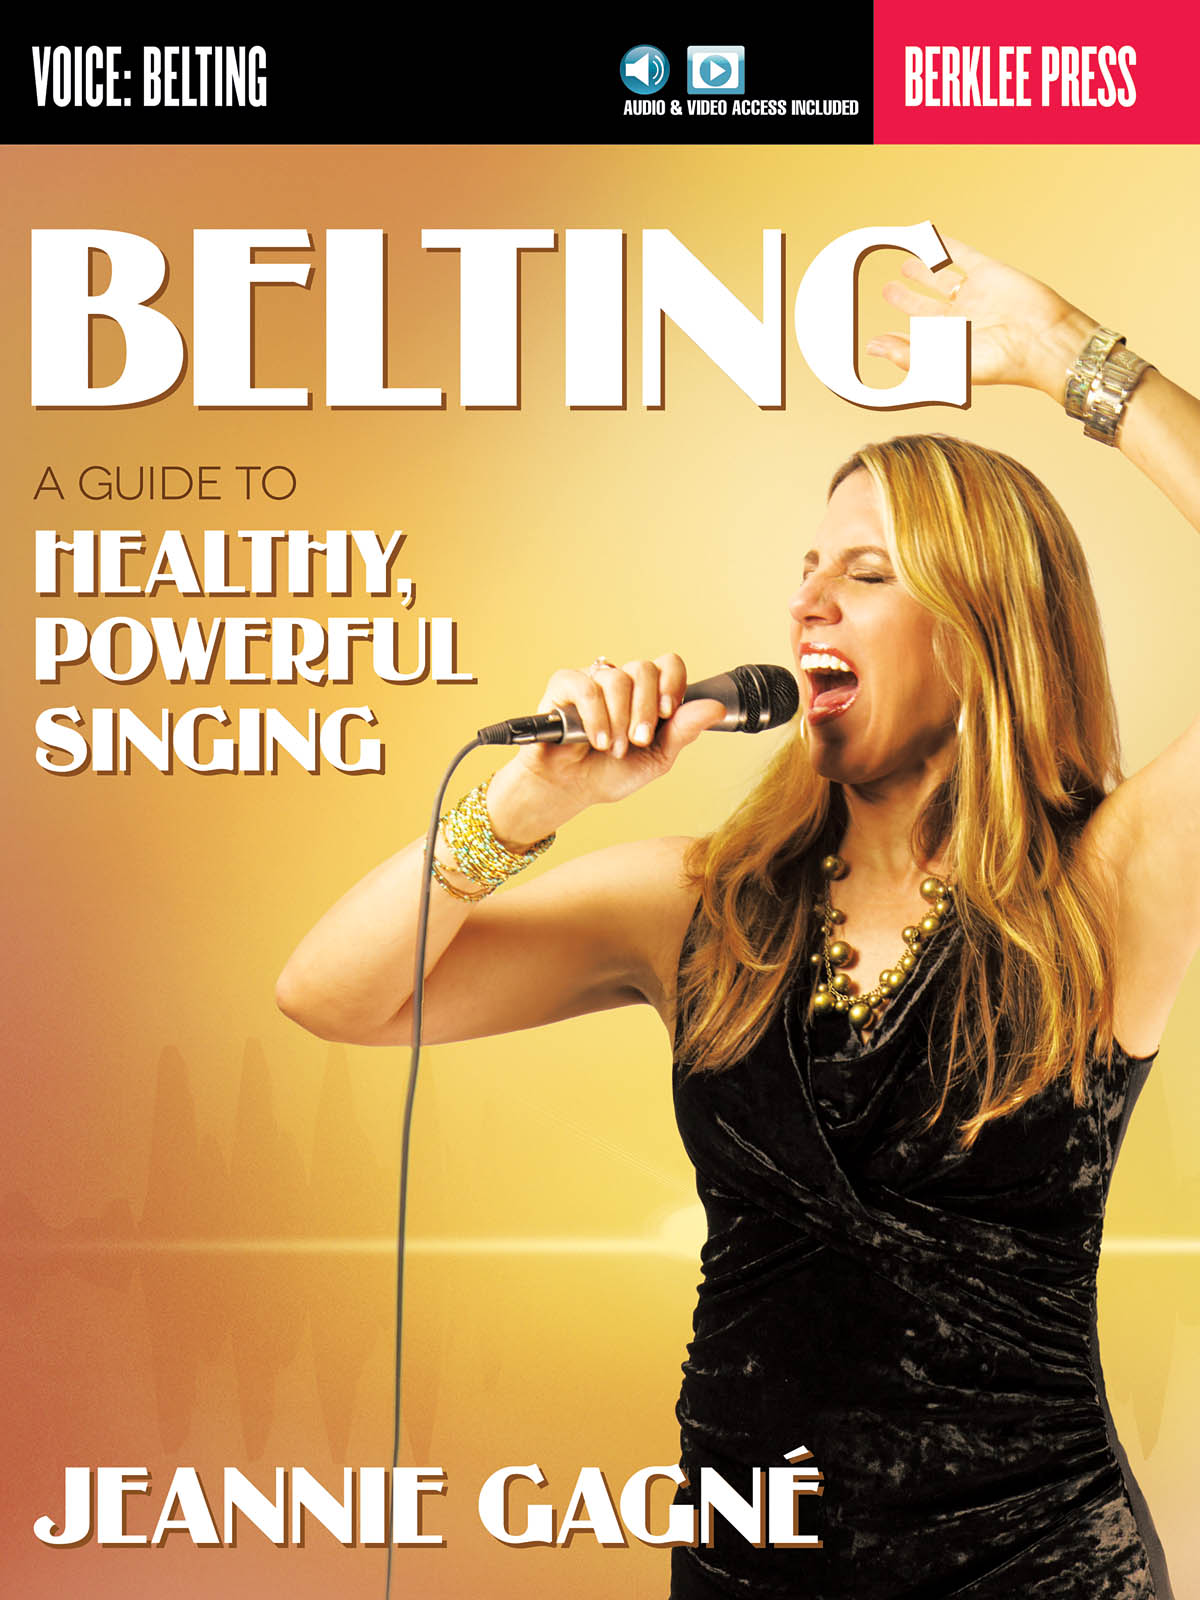 Belting: A Guide to Healthy Powerful Singing